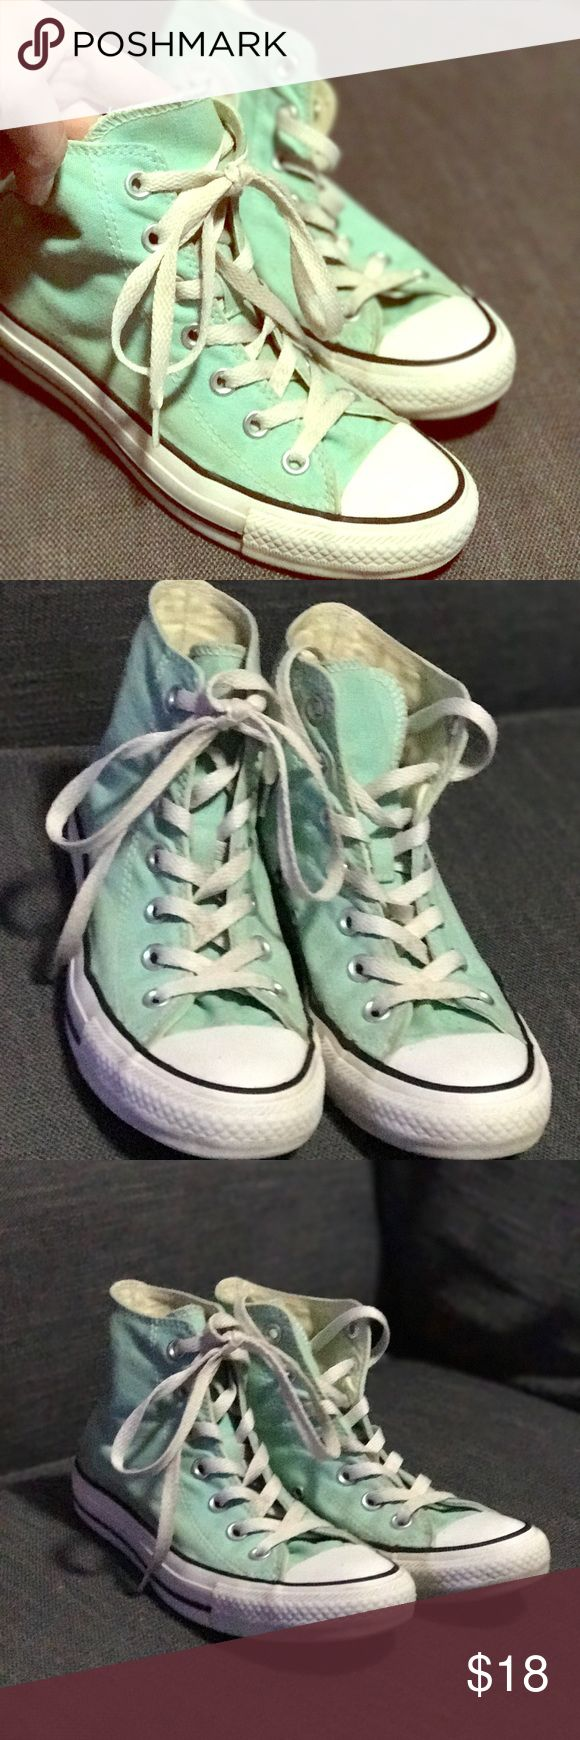 Converse high tops in Aqua Awesome high tops by Converse in a beautiful blue green color. In excellent used condition. Converse Shoes Sneakers